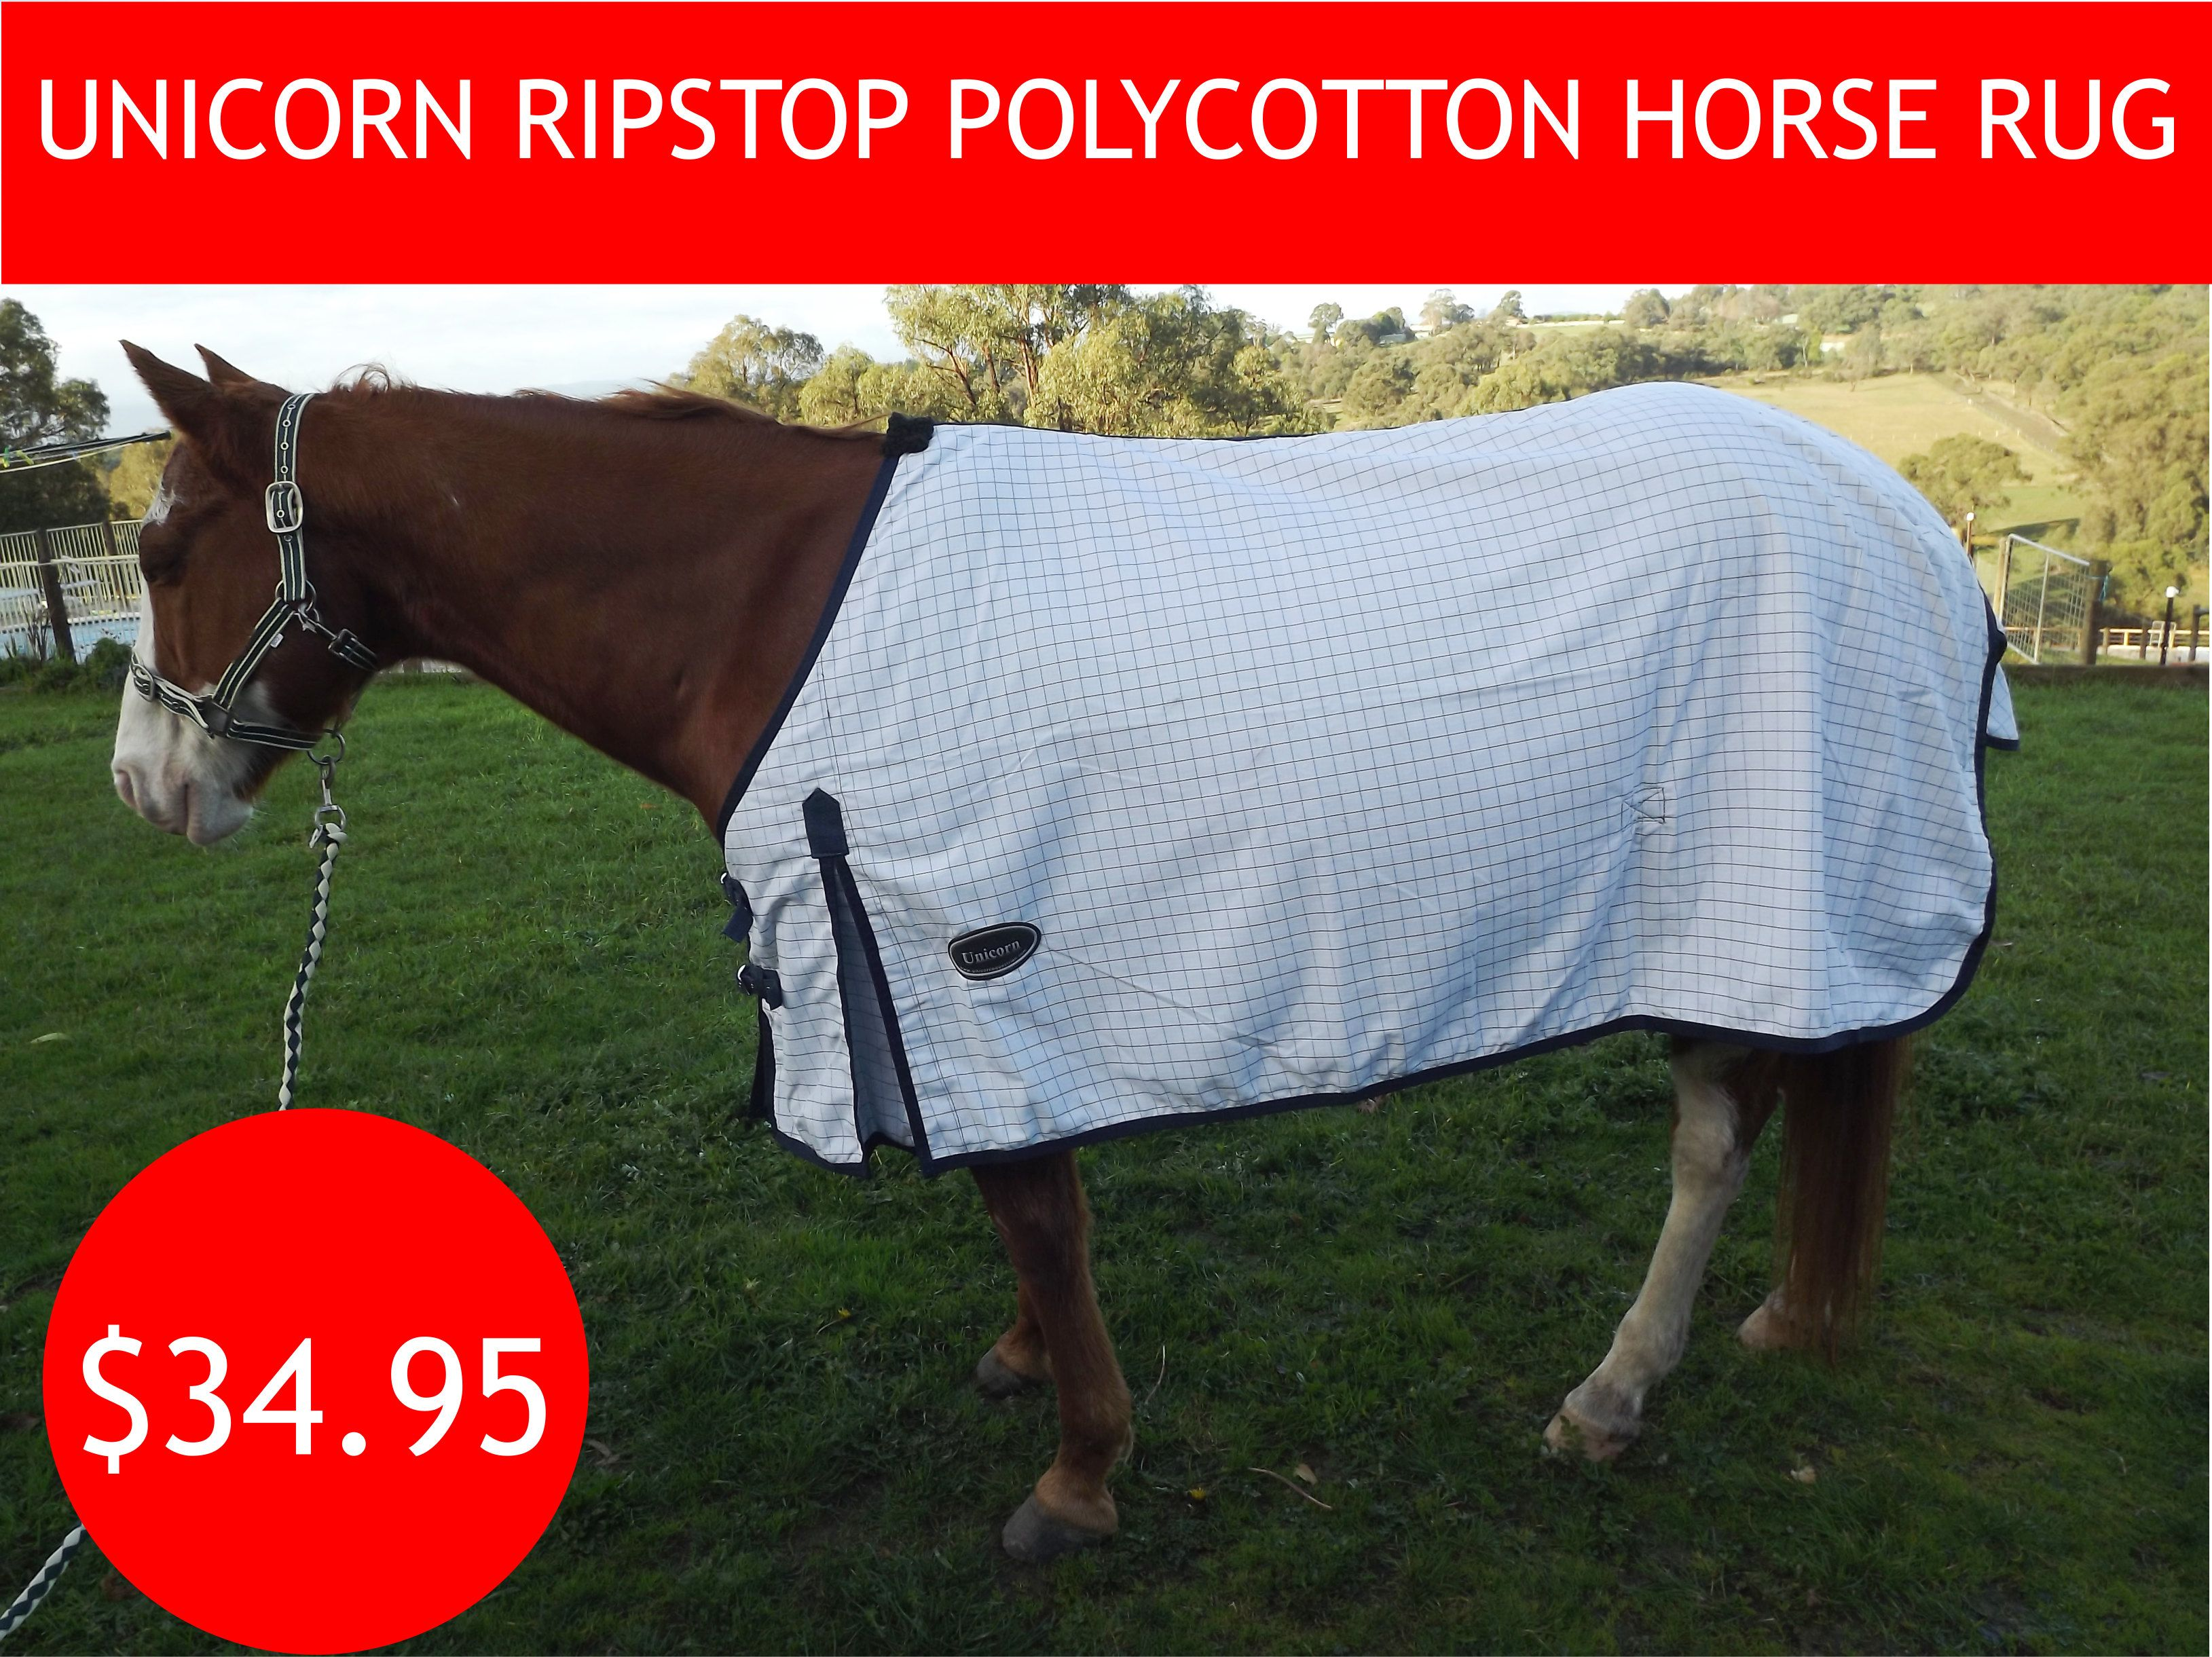 Trusty Ripstop Regular Polycotton Horse Rug Horse Rugs Well Woven Summer Rugs